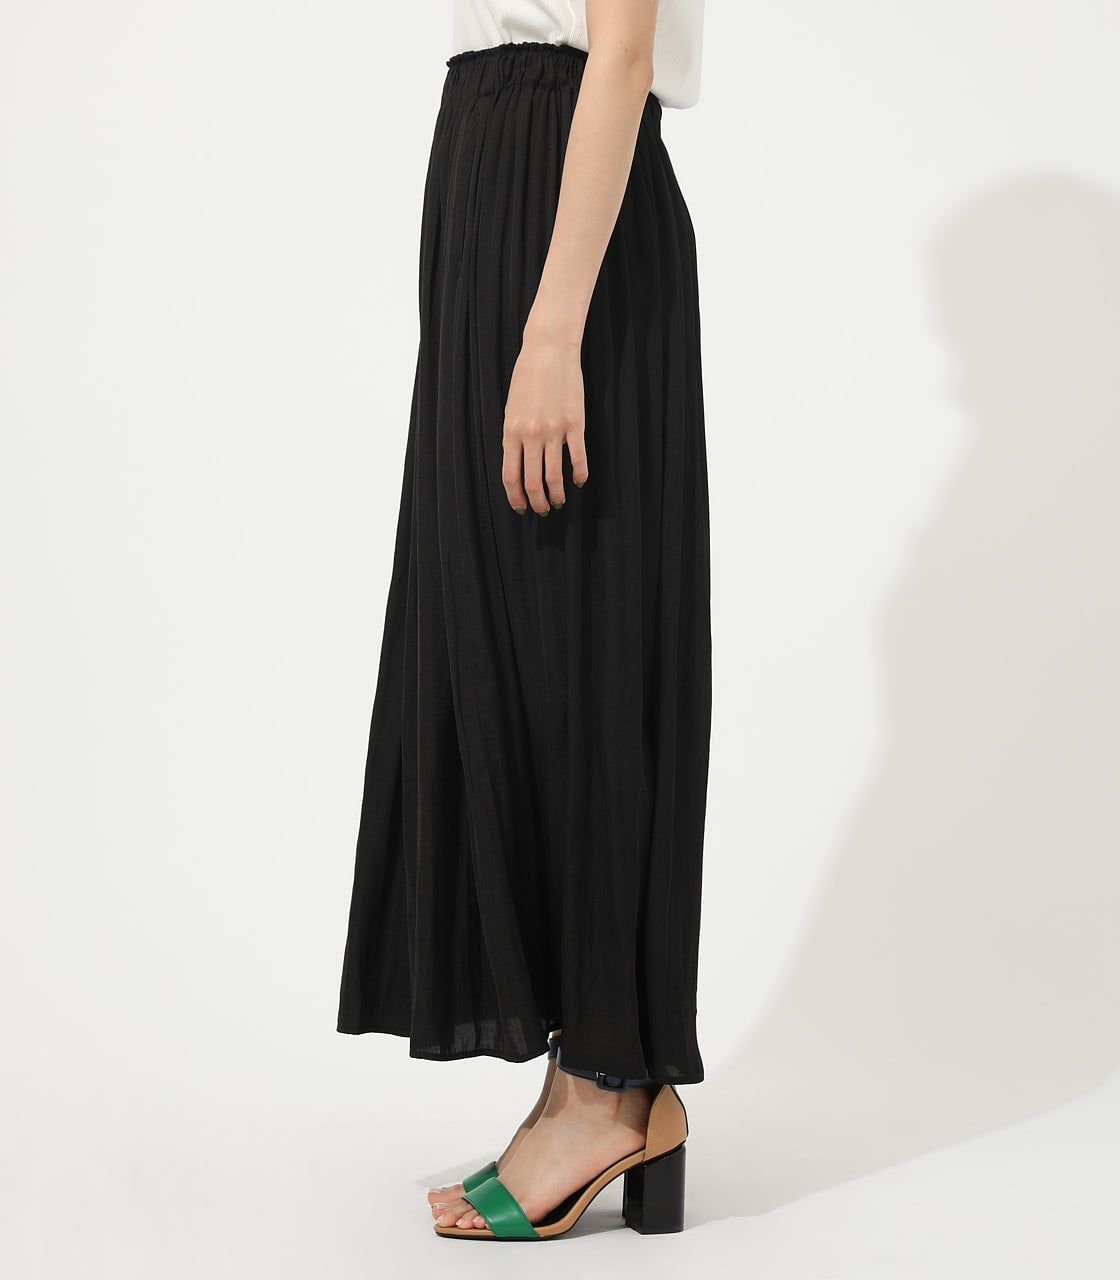 【AZUL BY MOUSSY】GATHER FLARE SKIRT 詳細画像 BLK 5